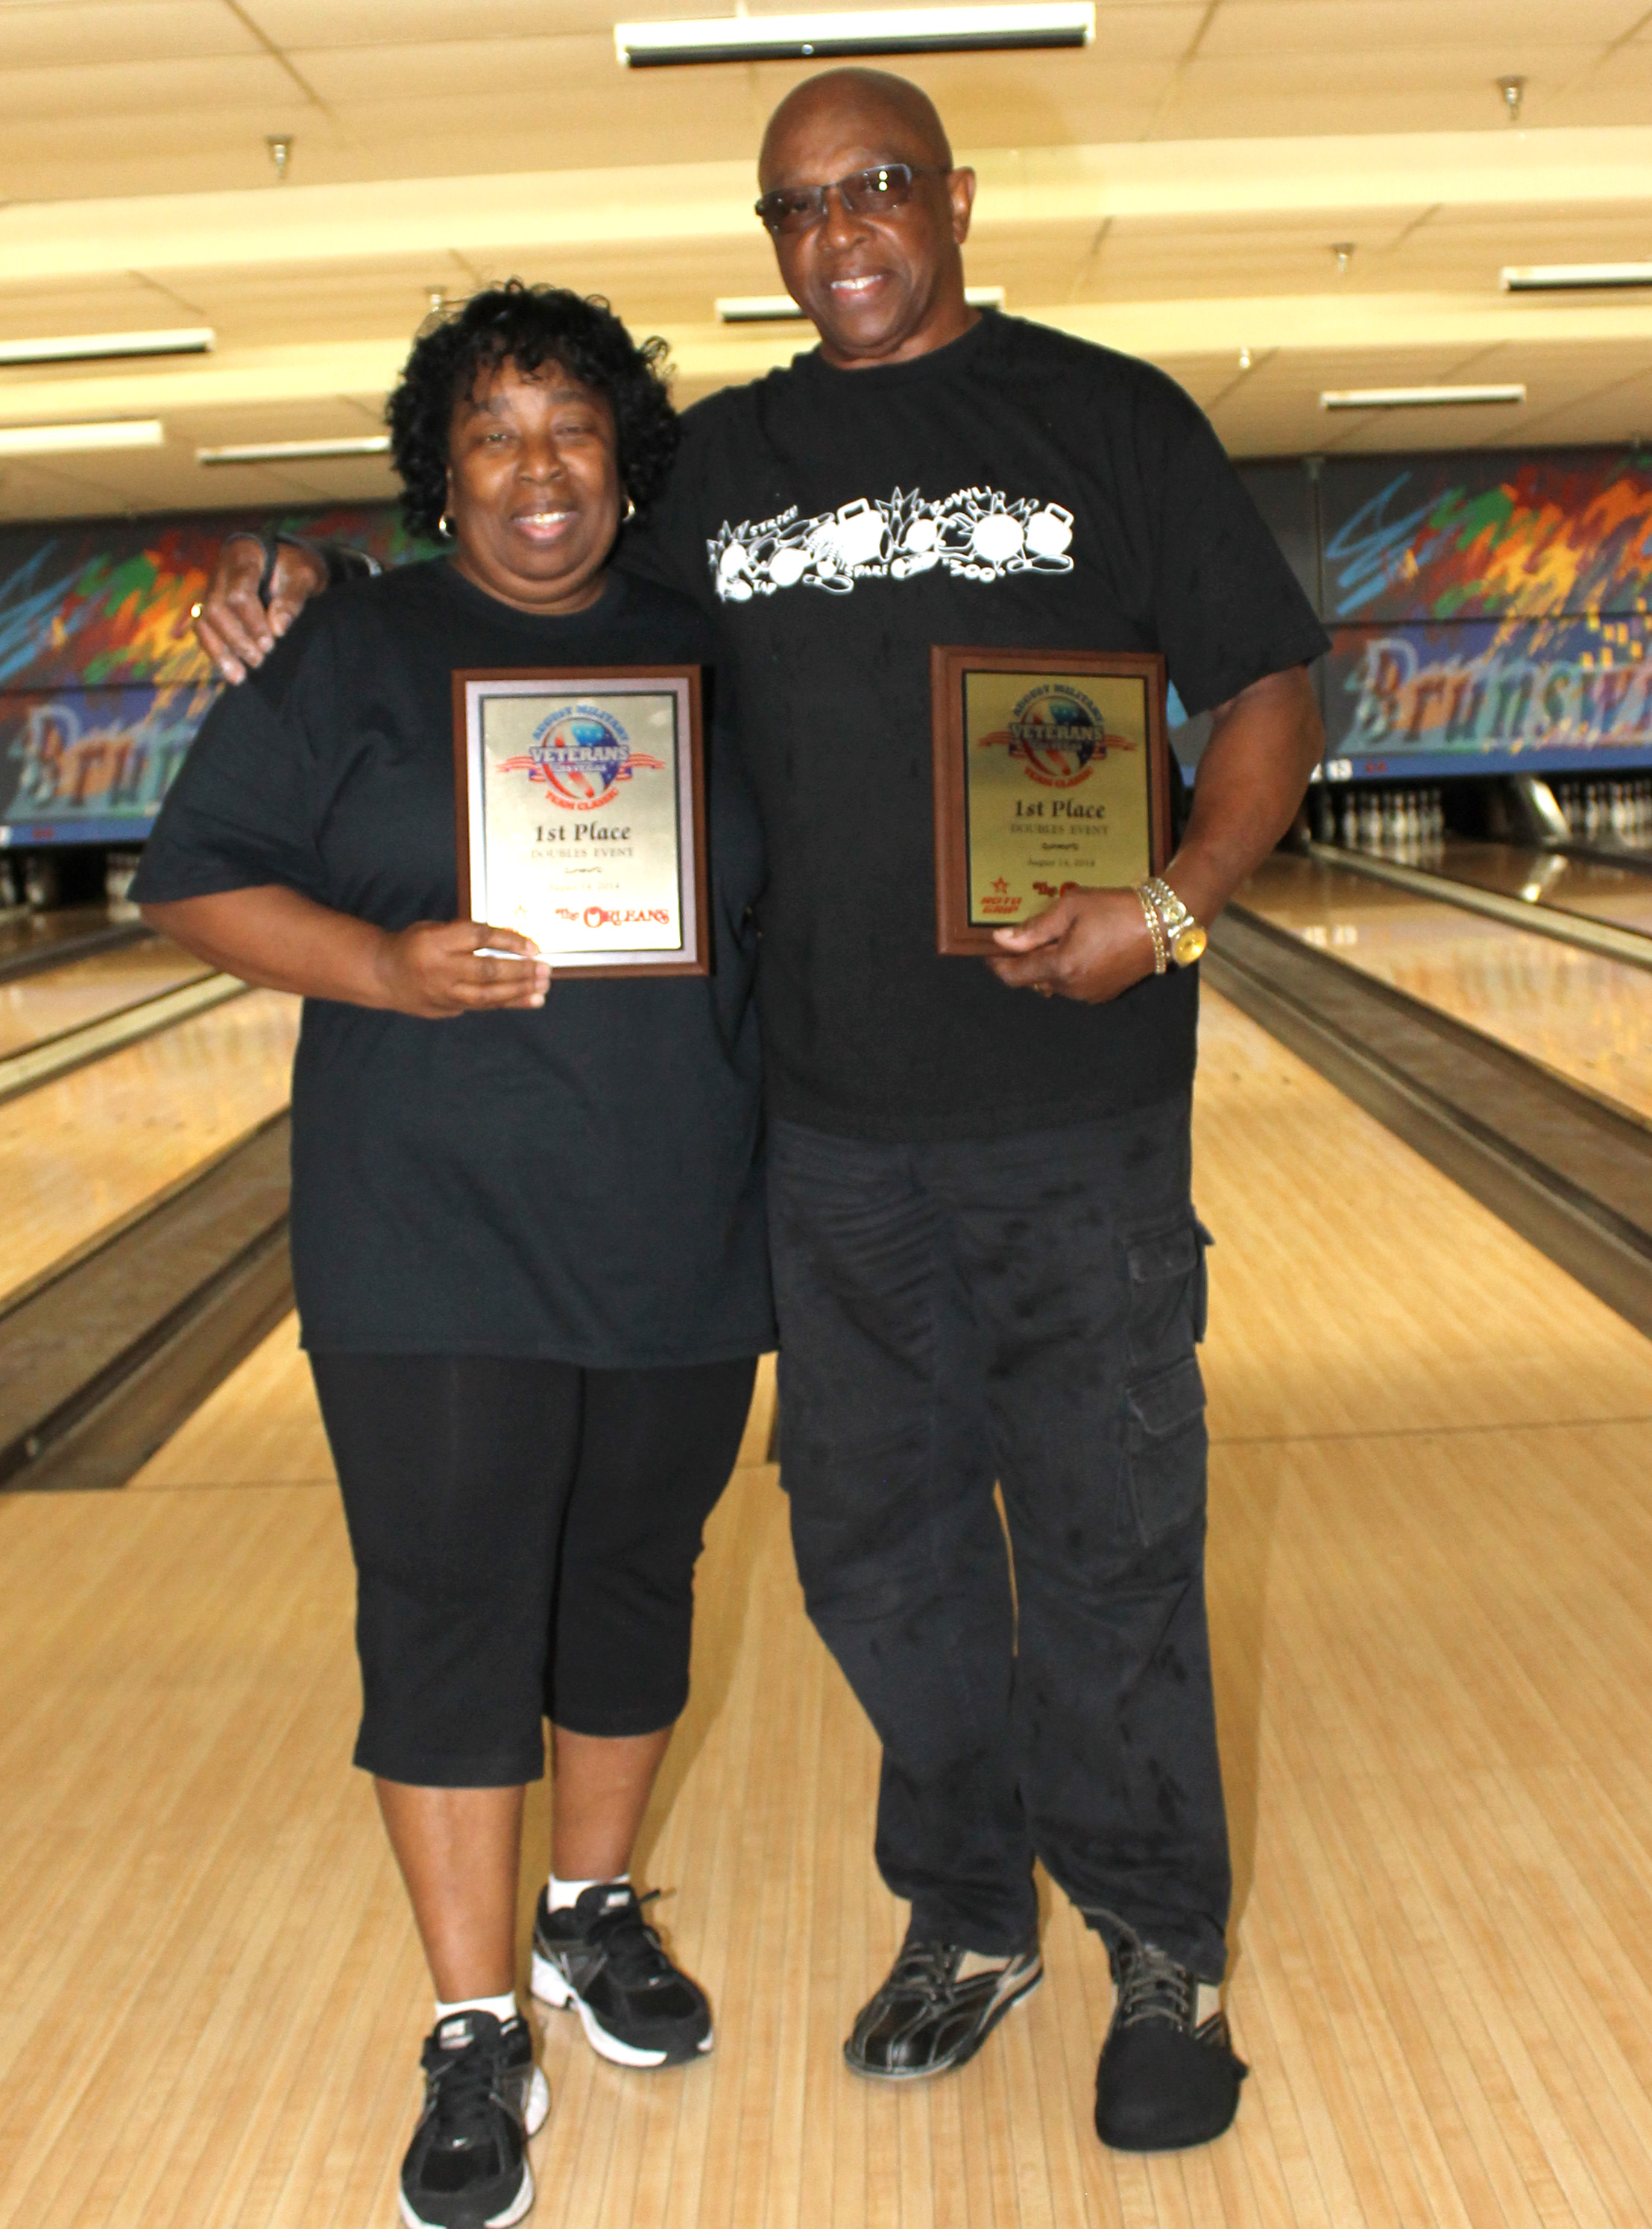 Plaques and a $2,500 prize for the winning doubles team of Felix & Glenice!